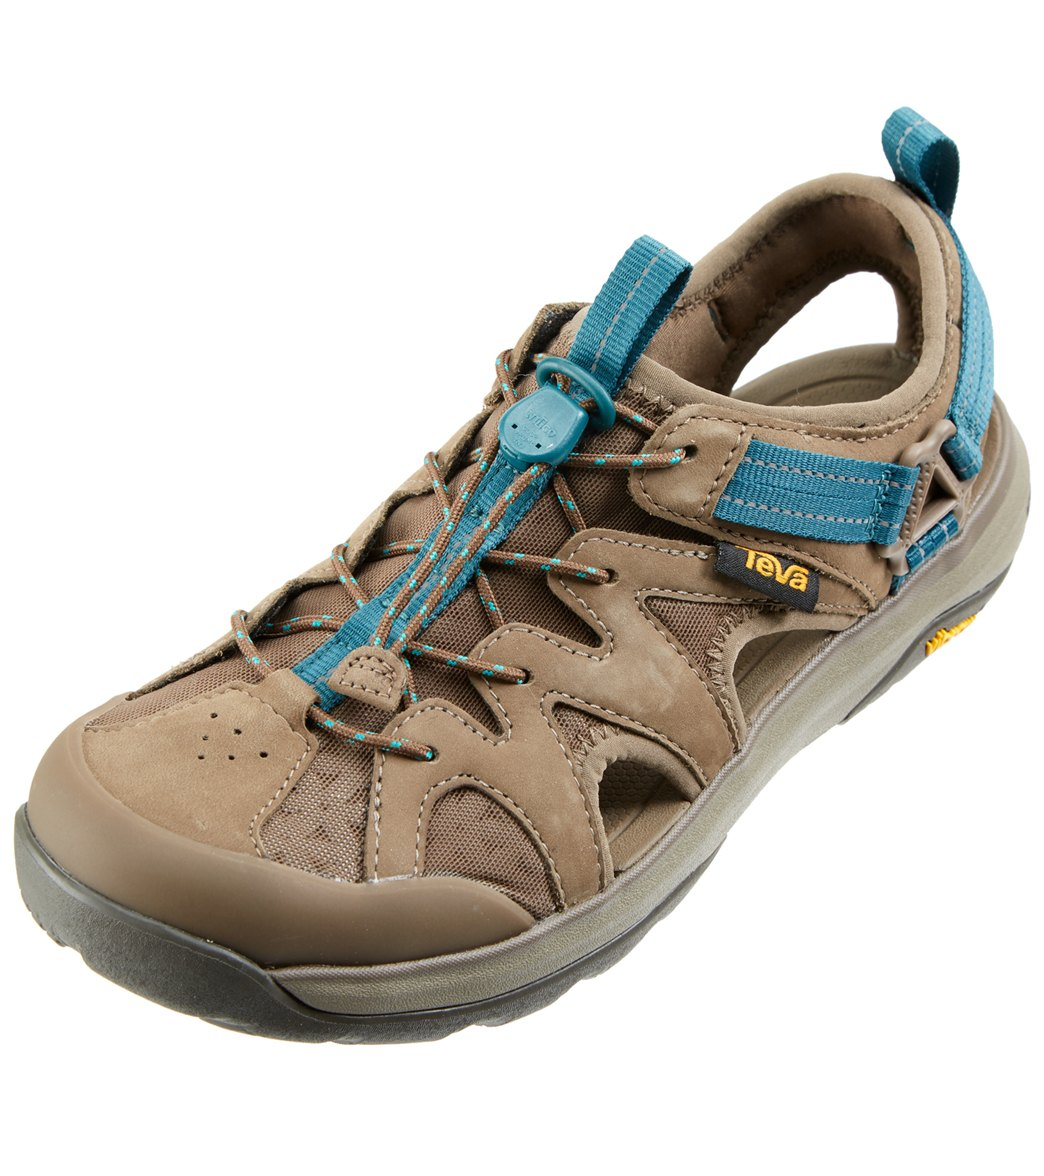 45b207137 Teva Women s Terra Float Active Lace Water Shoe at SwimOutlet.com ...